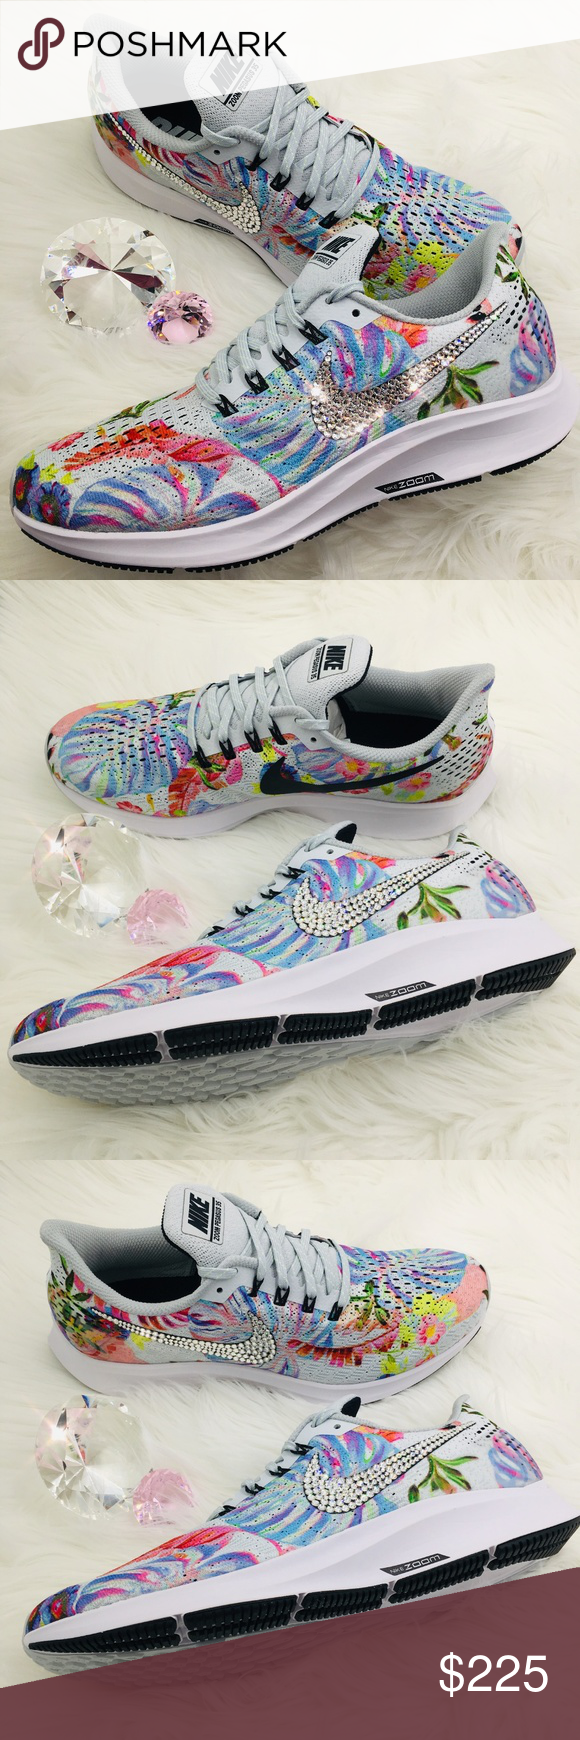 Bling Nike Air Zoom Pegasus 35 Floral w  Swarovski GORGEOUS!! Brand New Nike  Air Zoom Pegasus 35 Women s Floral Print Shoes with Swarovski Crystals on  ... f5491193164c